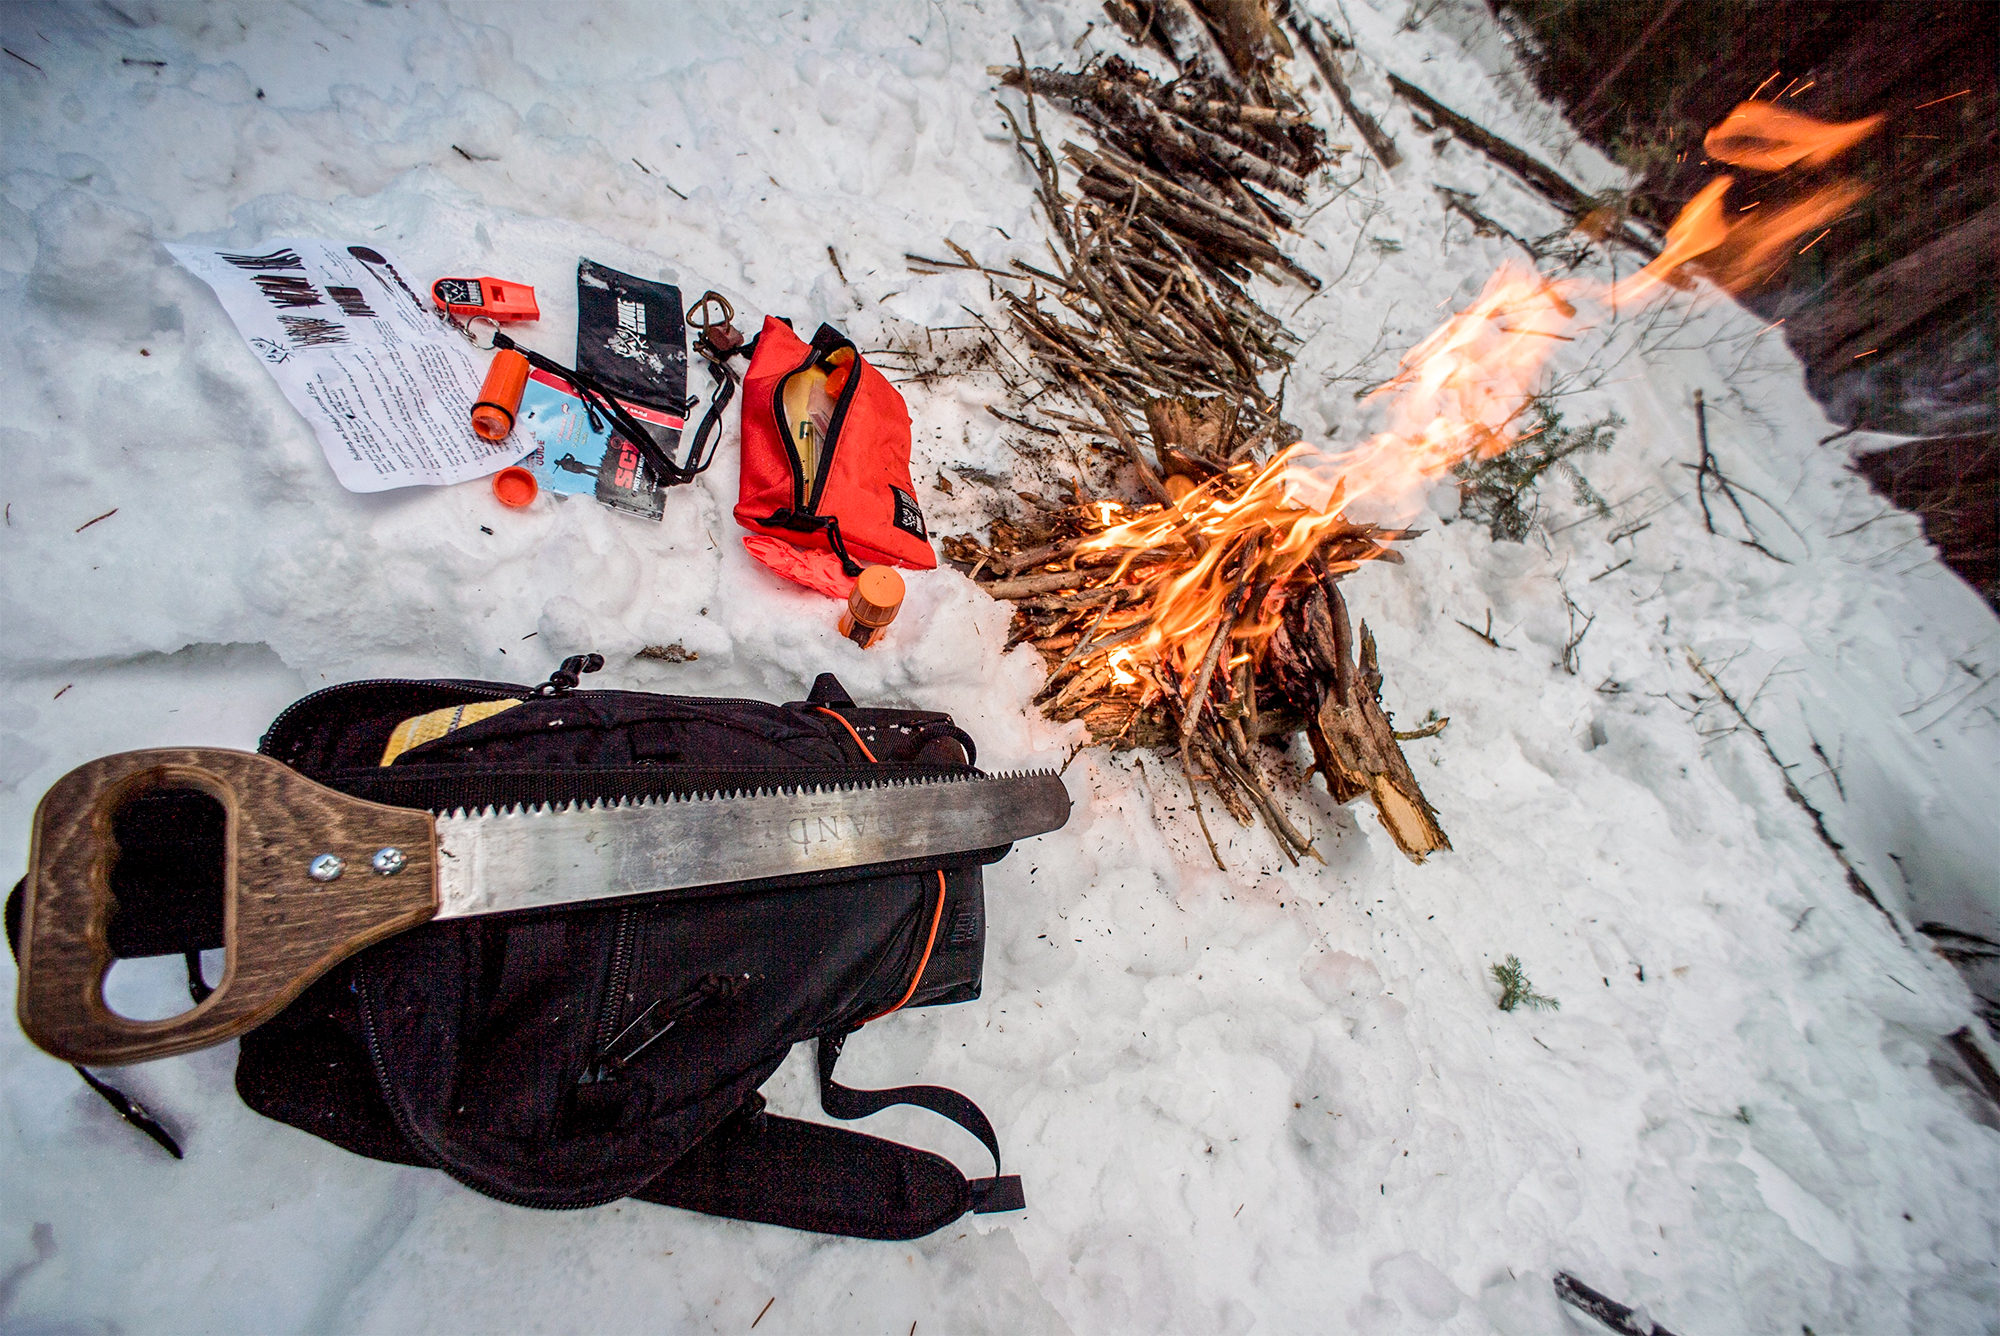 Rethink Your Survival Kit: One Expert Explains Why